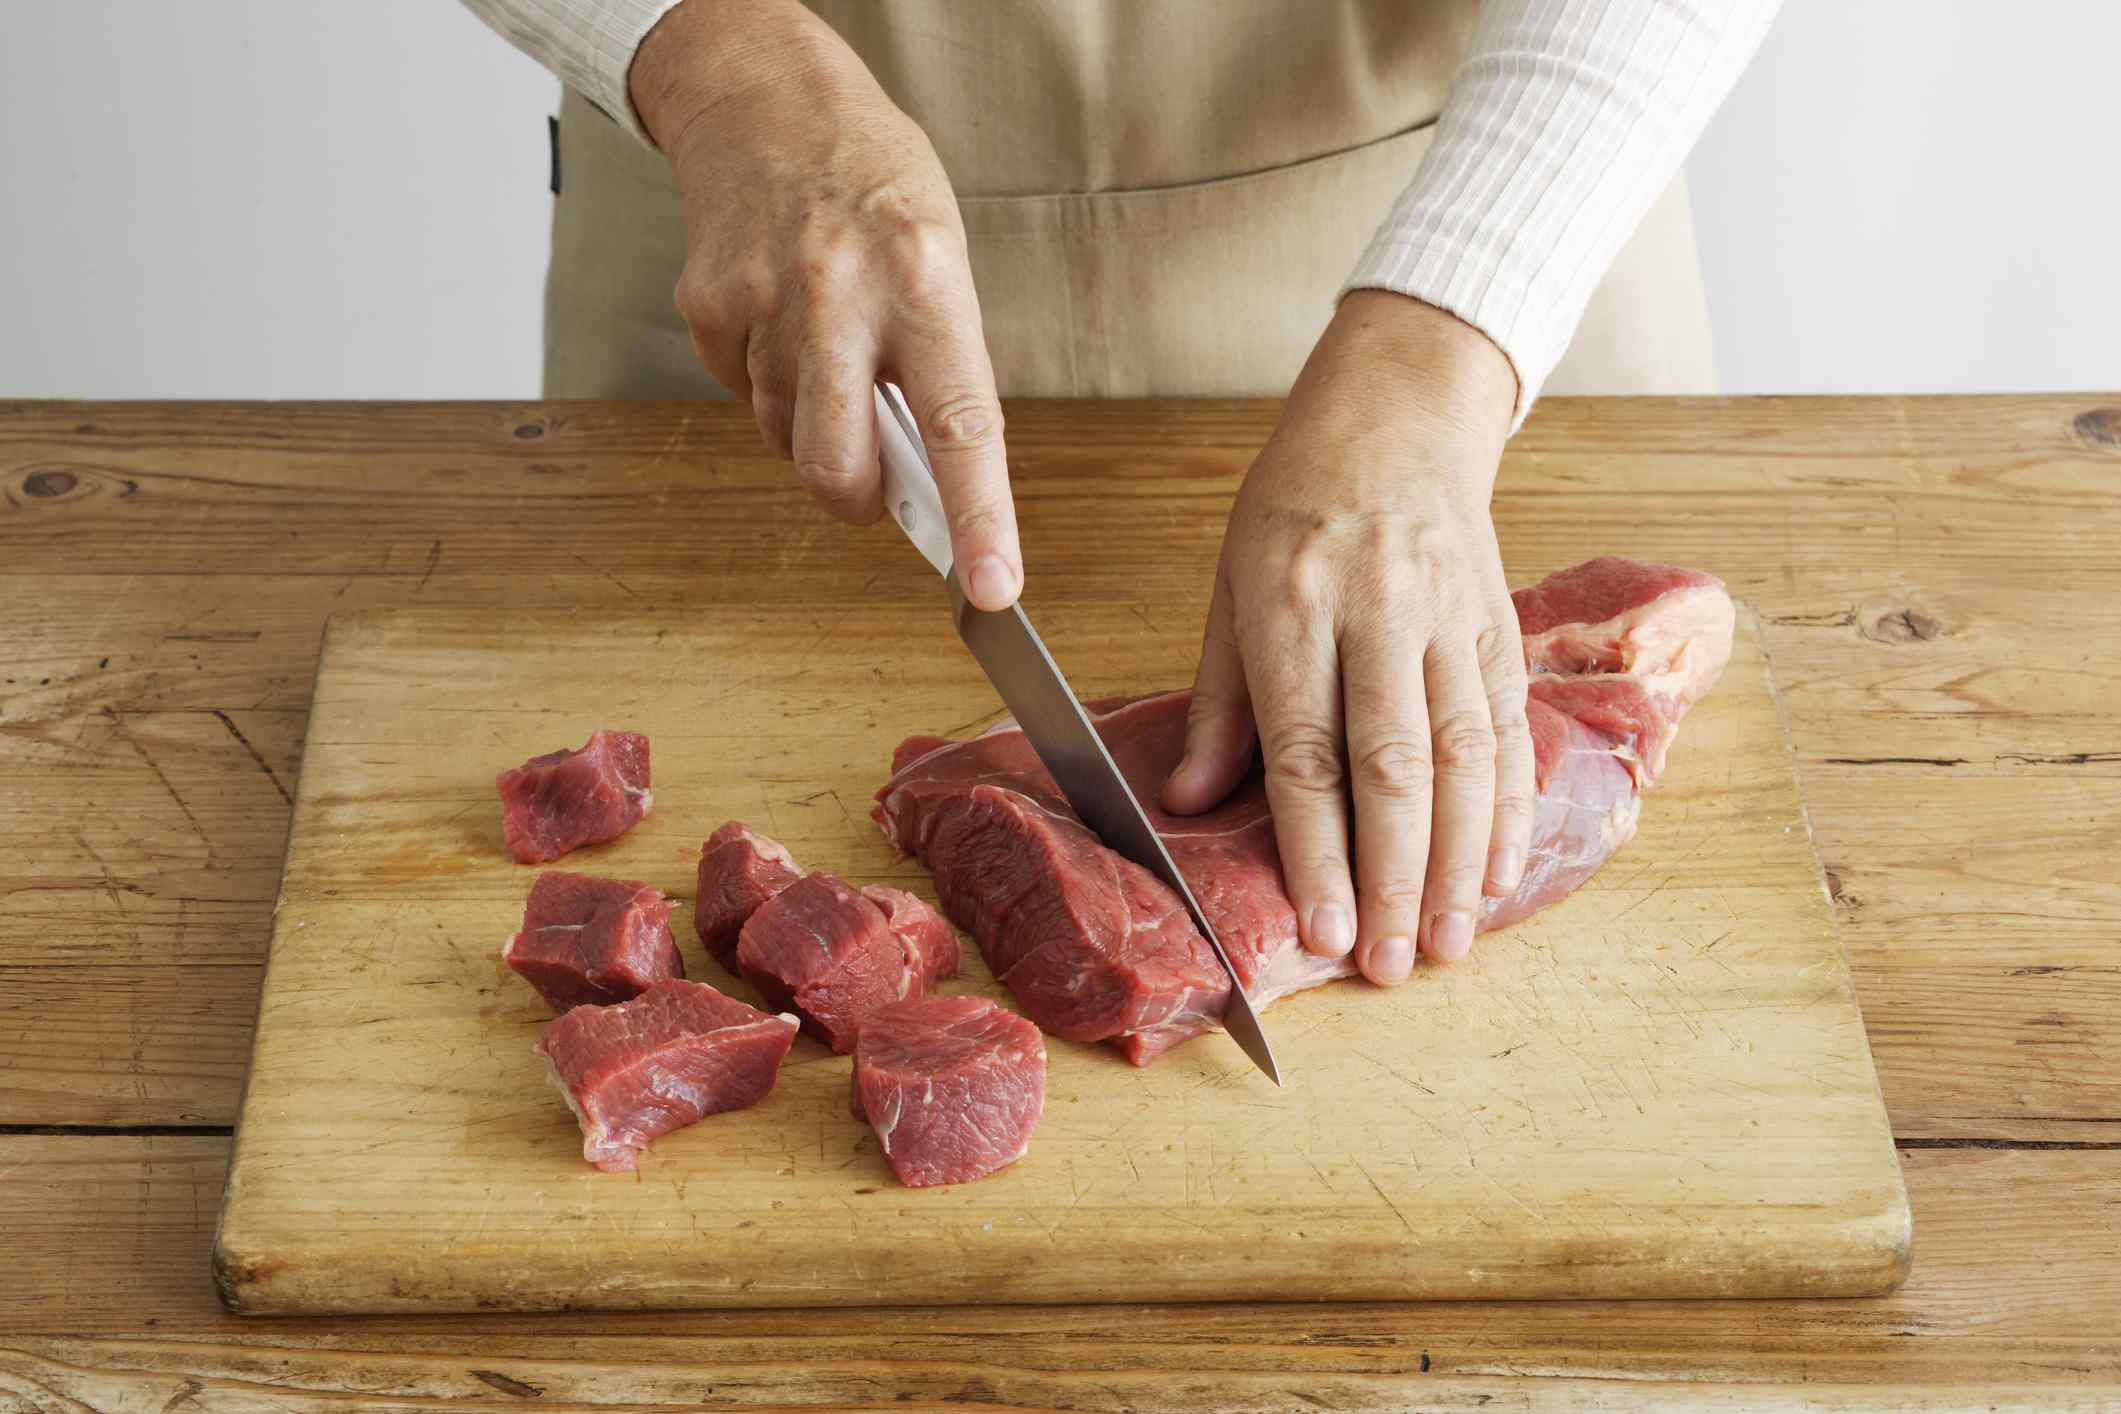 Cutting beef on board